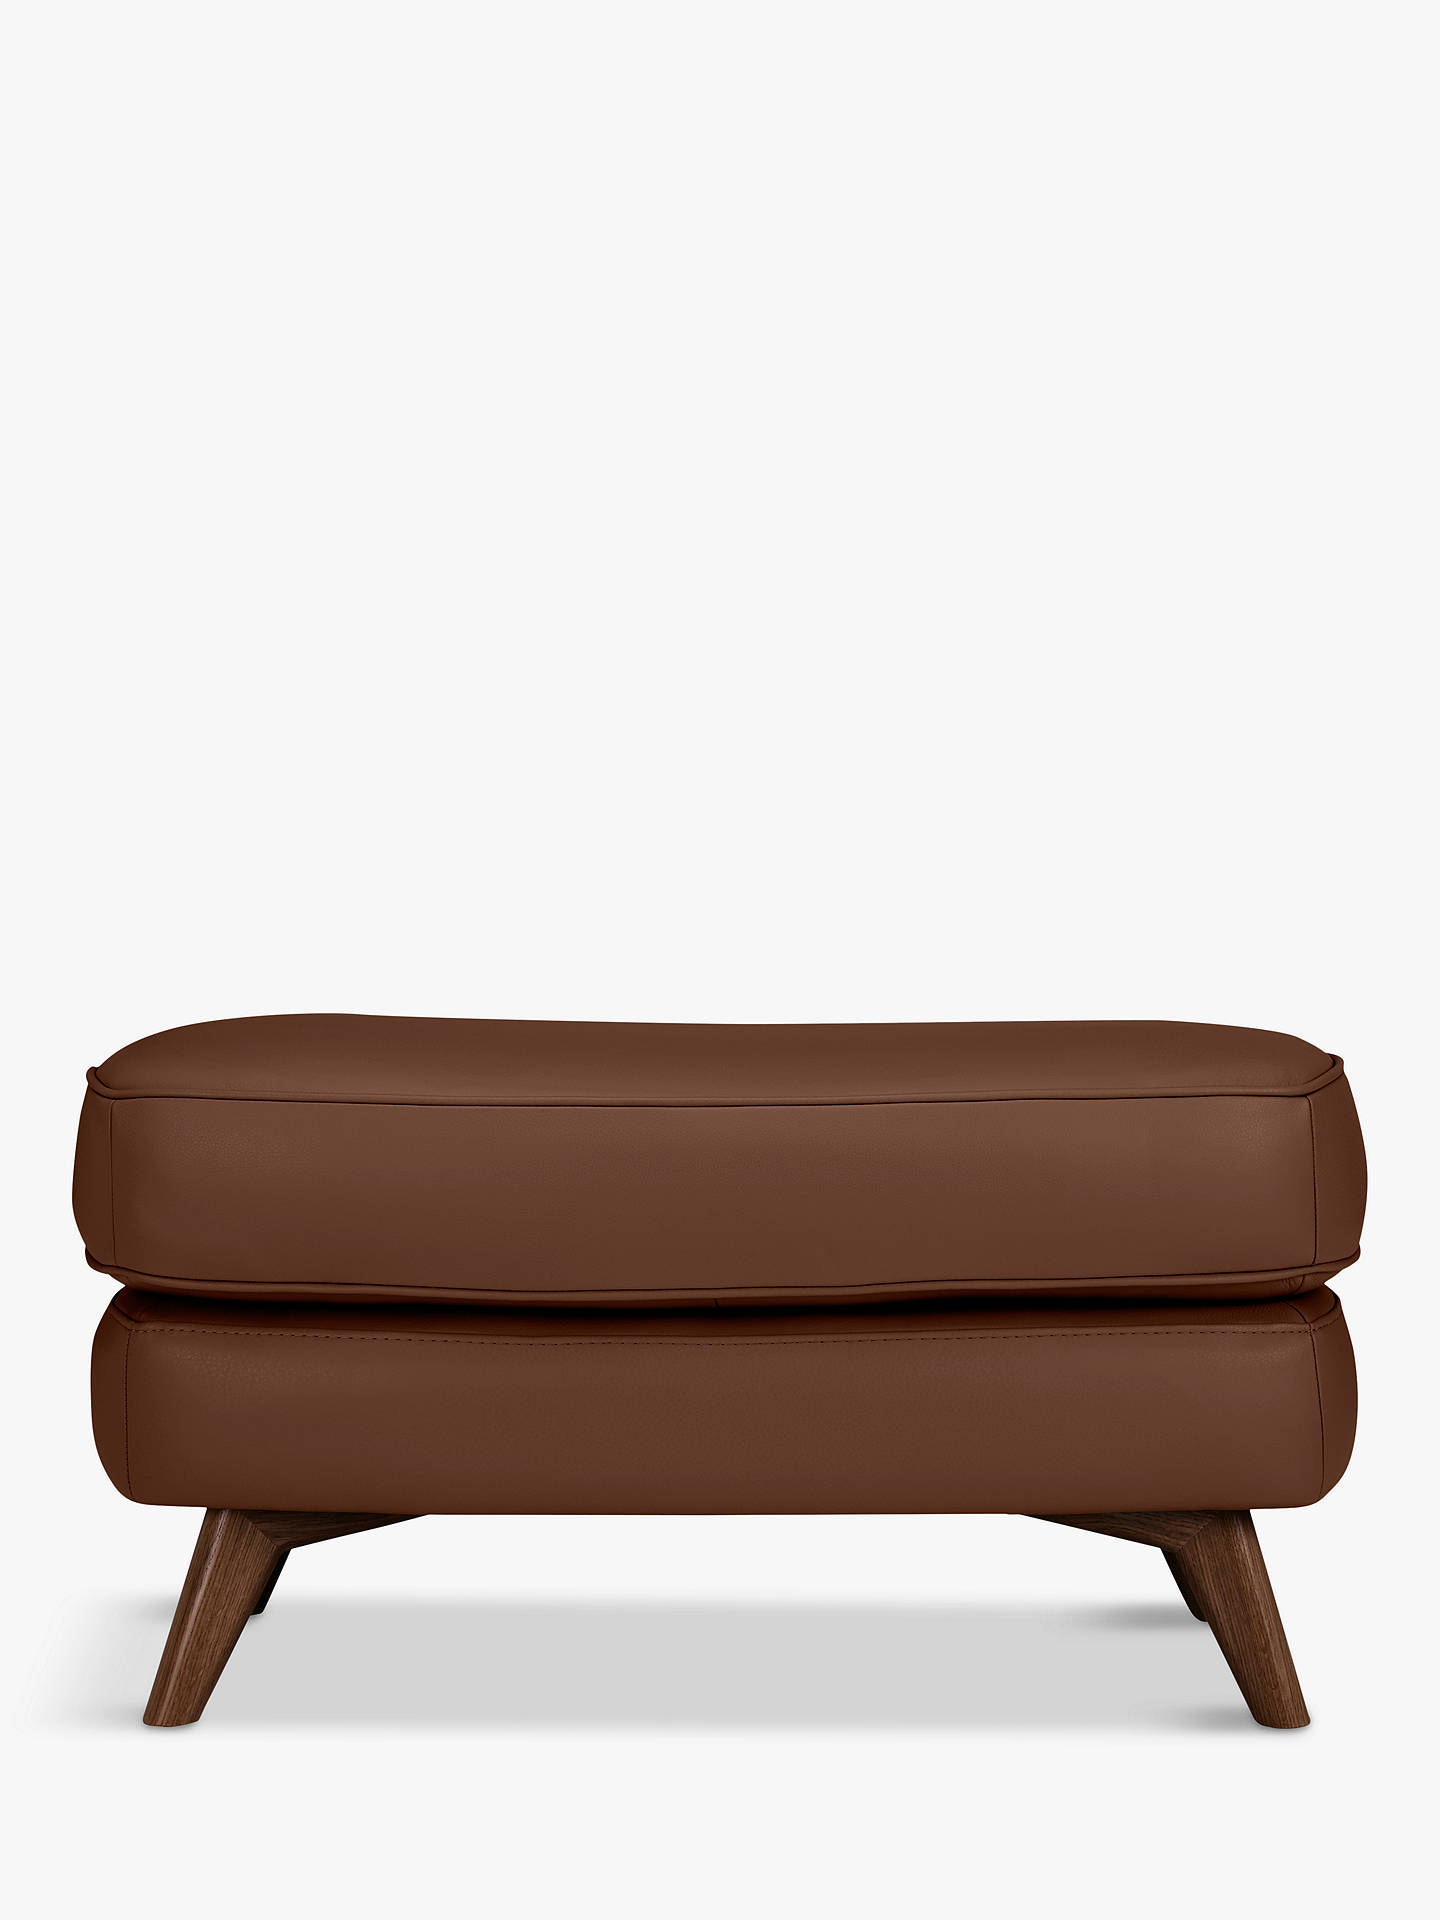 BuyJohn Lewis & Partners Barbican Leather Footstool, Dark Leg, Contempo Castanga Online at johnlewis.com